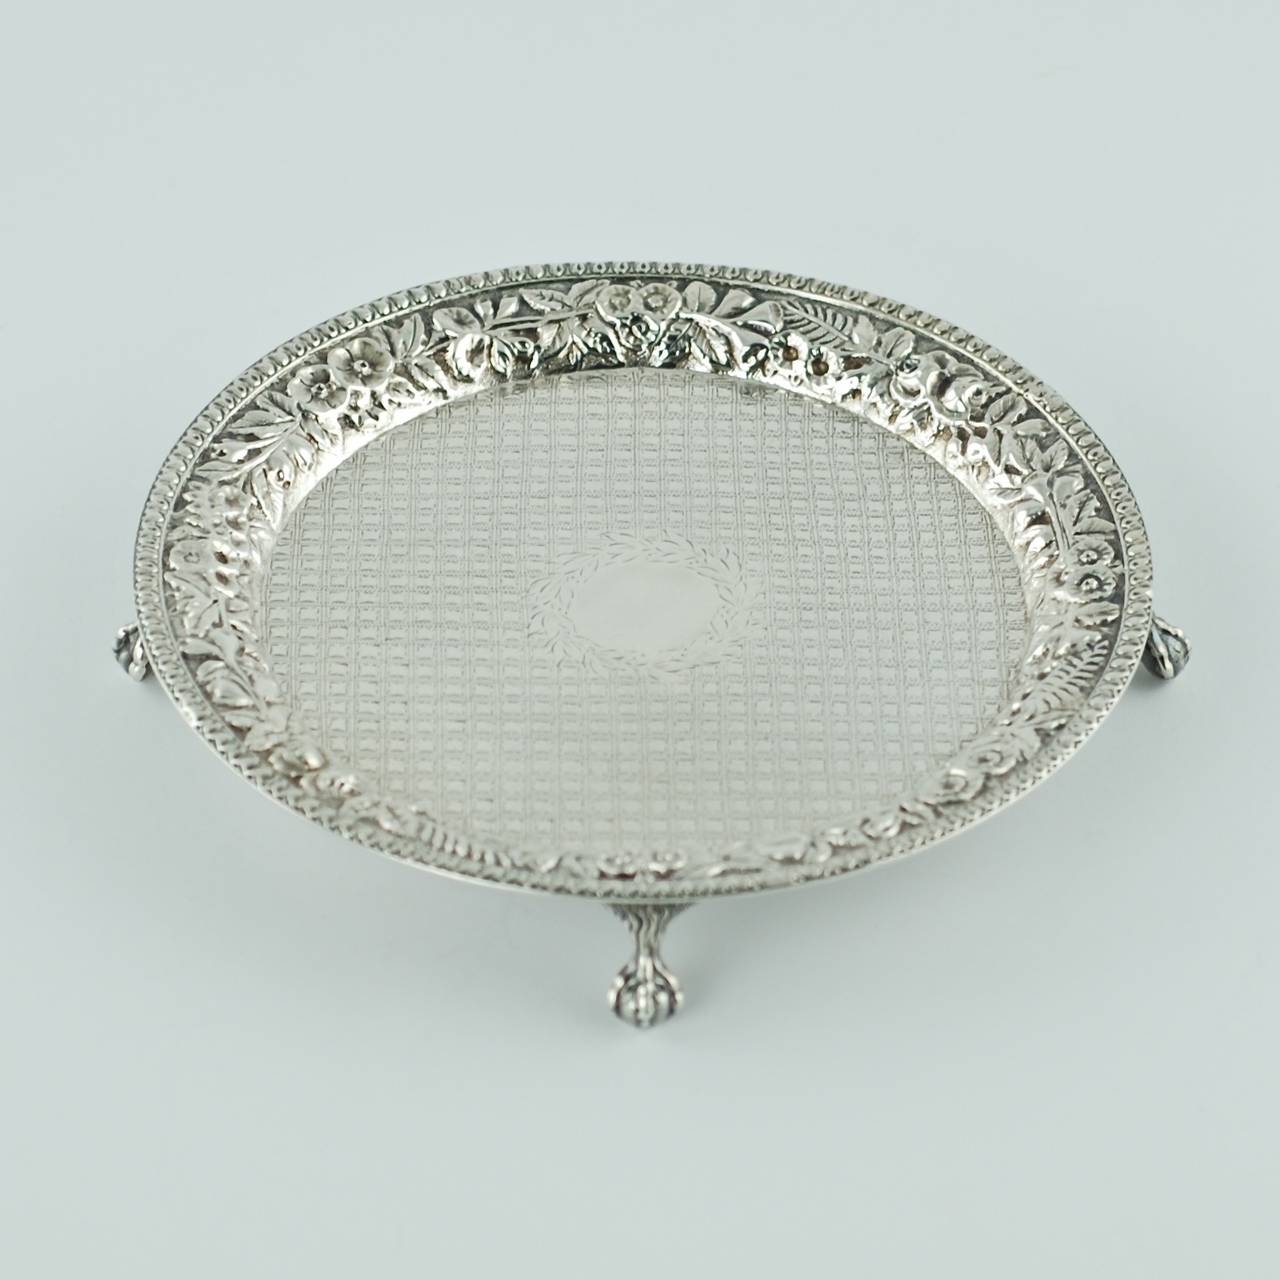 Victorian 19th Century S. Kirk & Son Repoussé Sterling Silver Salver For Sale